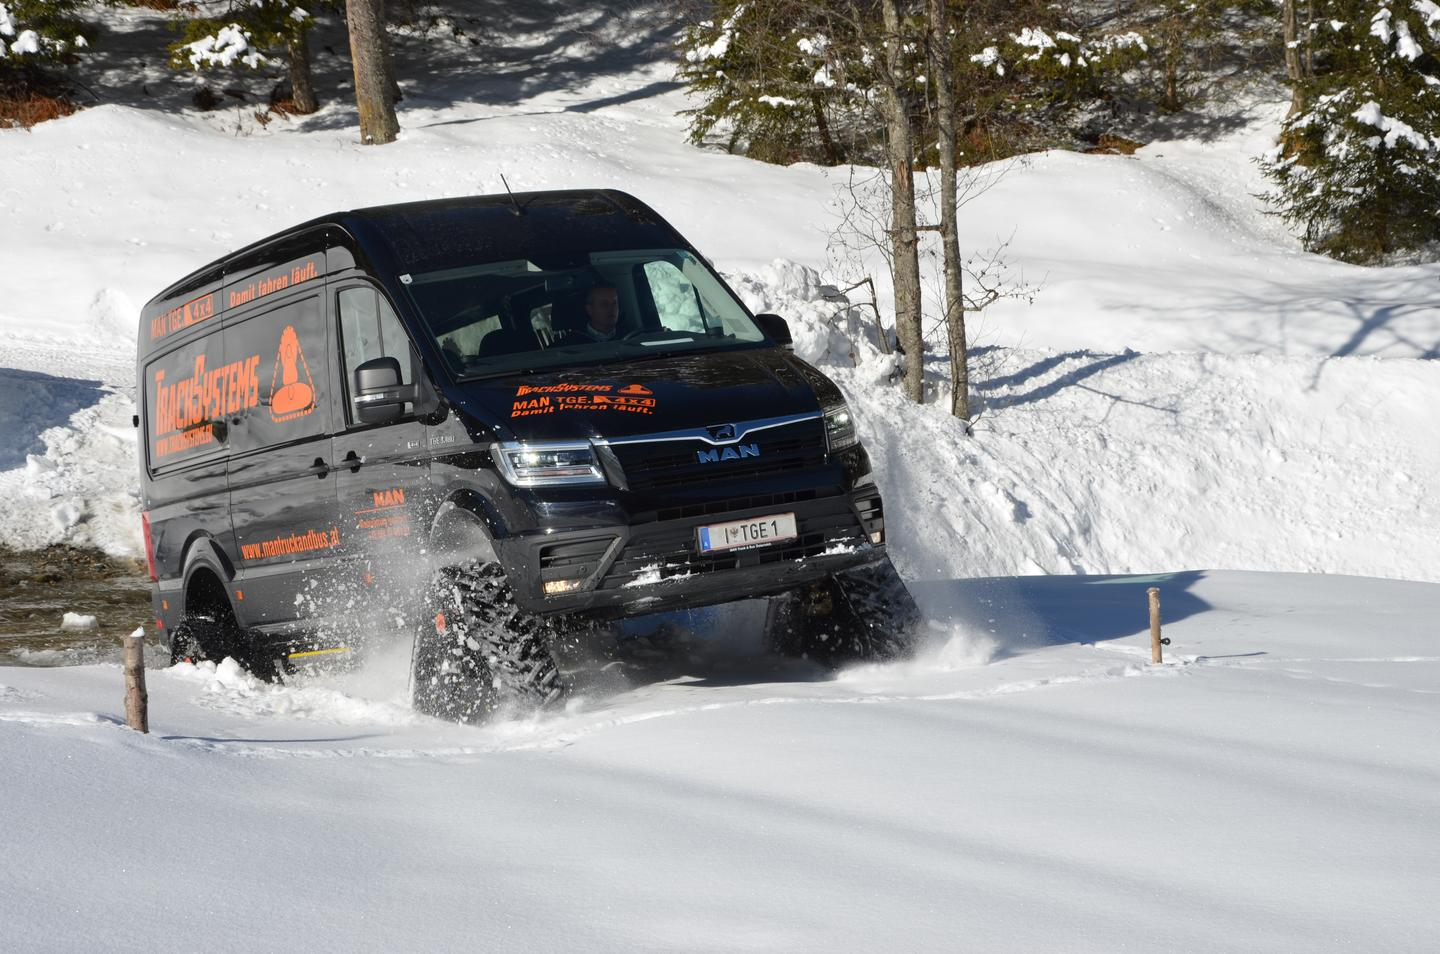 With its four track drives, the MAN TGE 3.180 4x4 combi powers through soft snow